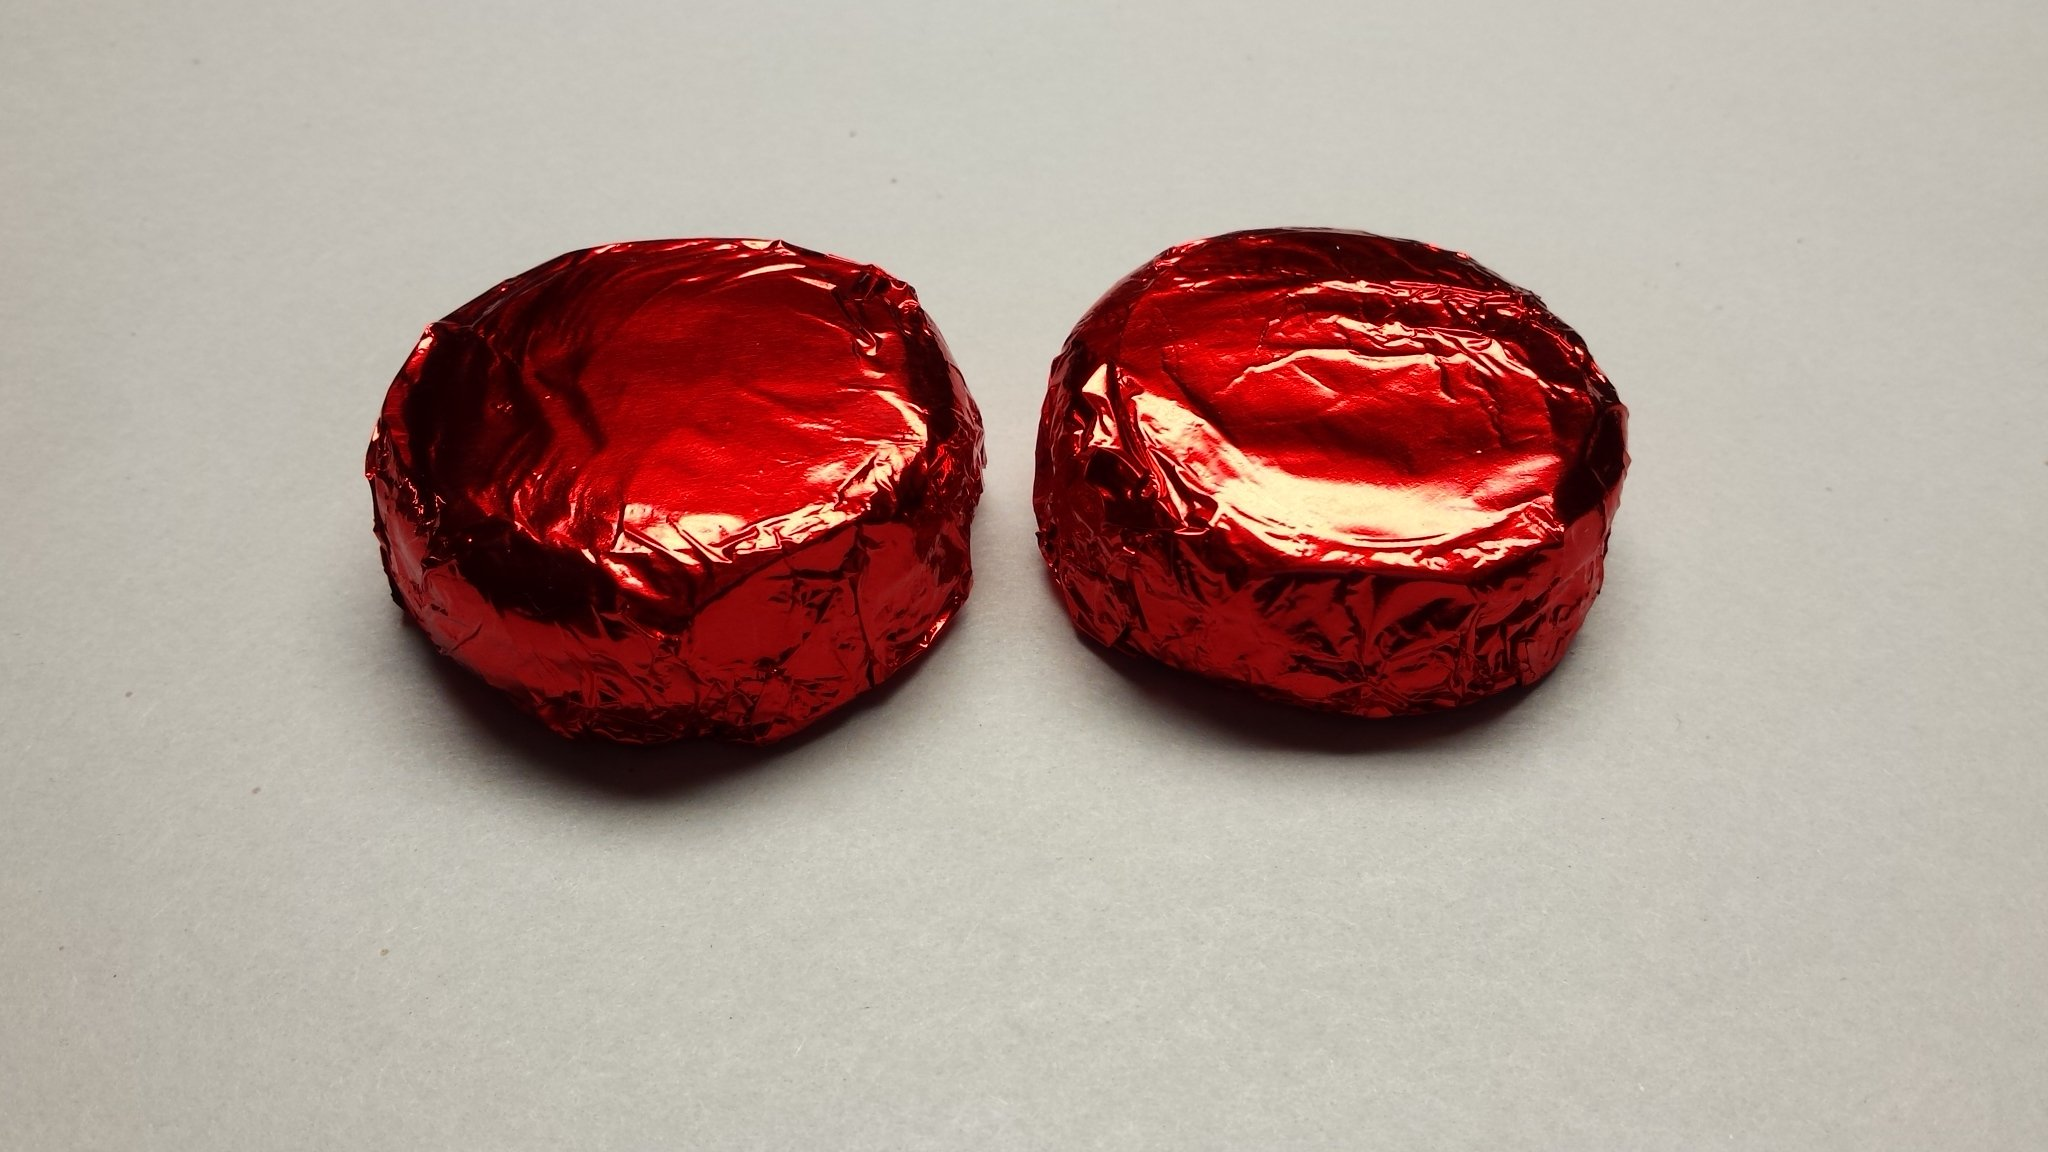 Chocolate Covered Oreo Cookies 50 Pieces RED Foil